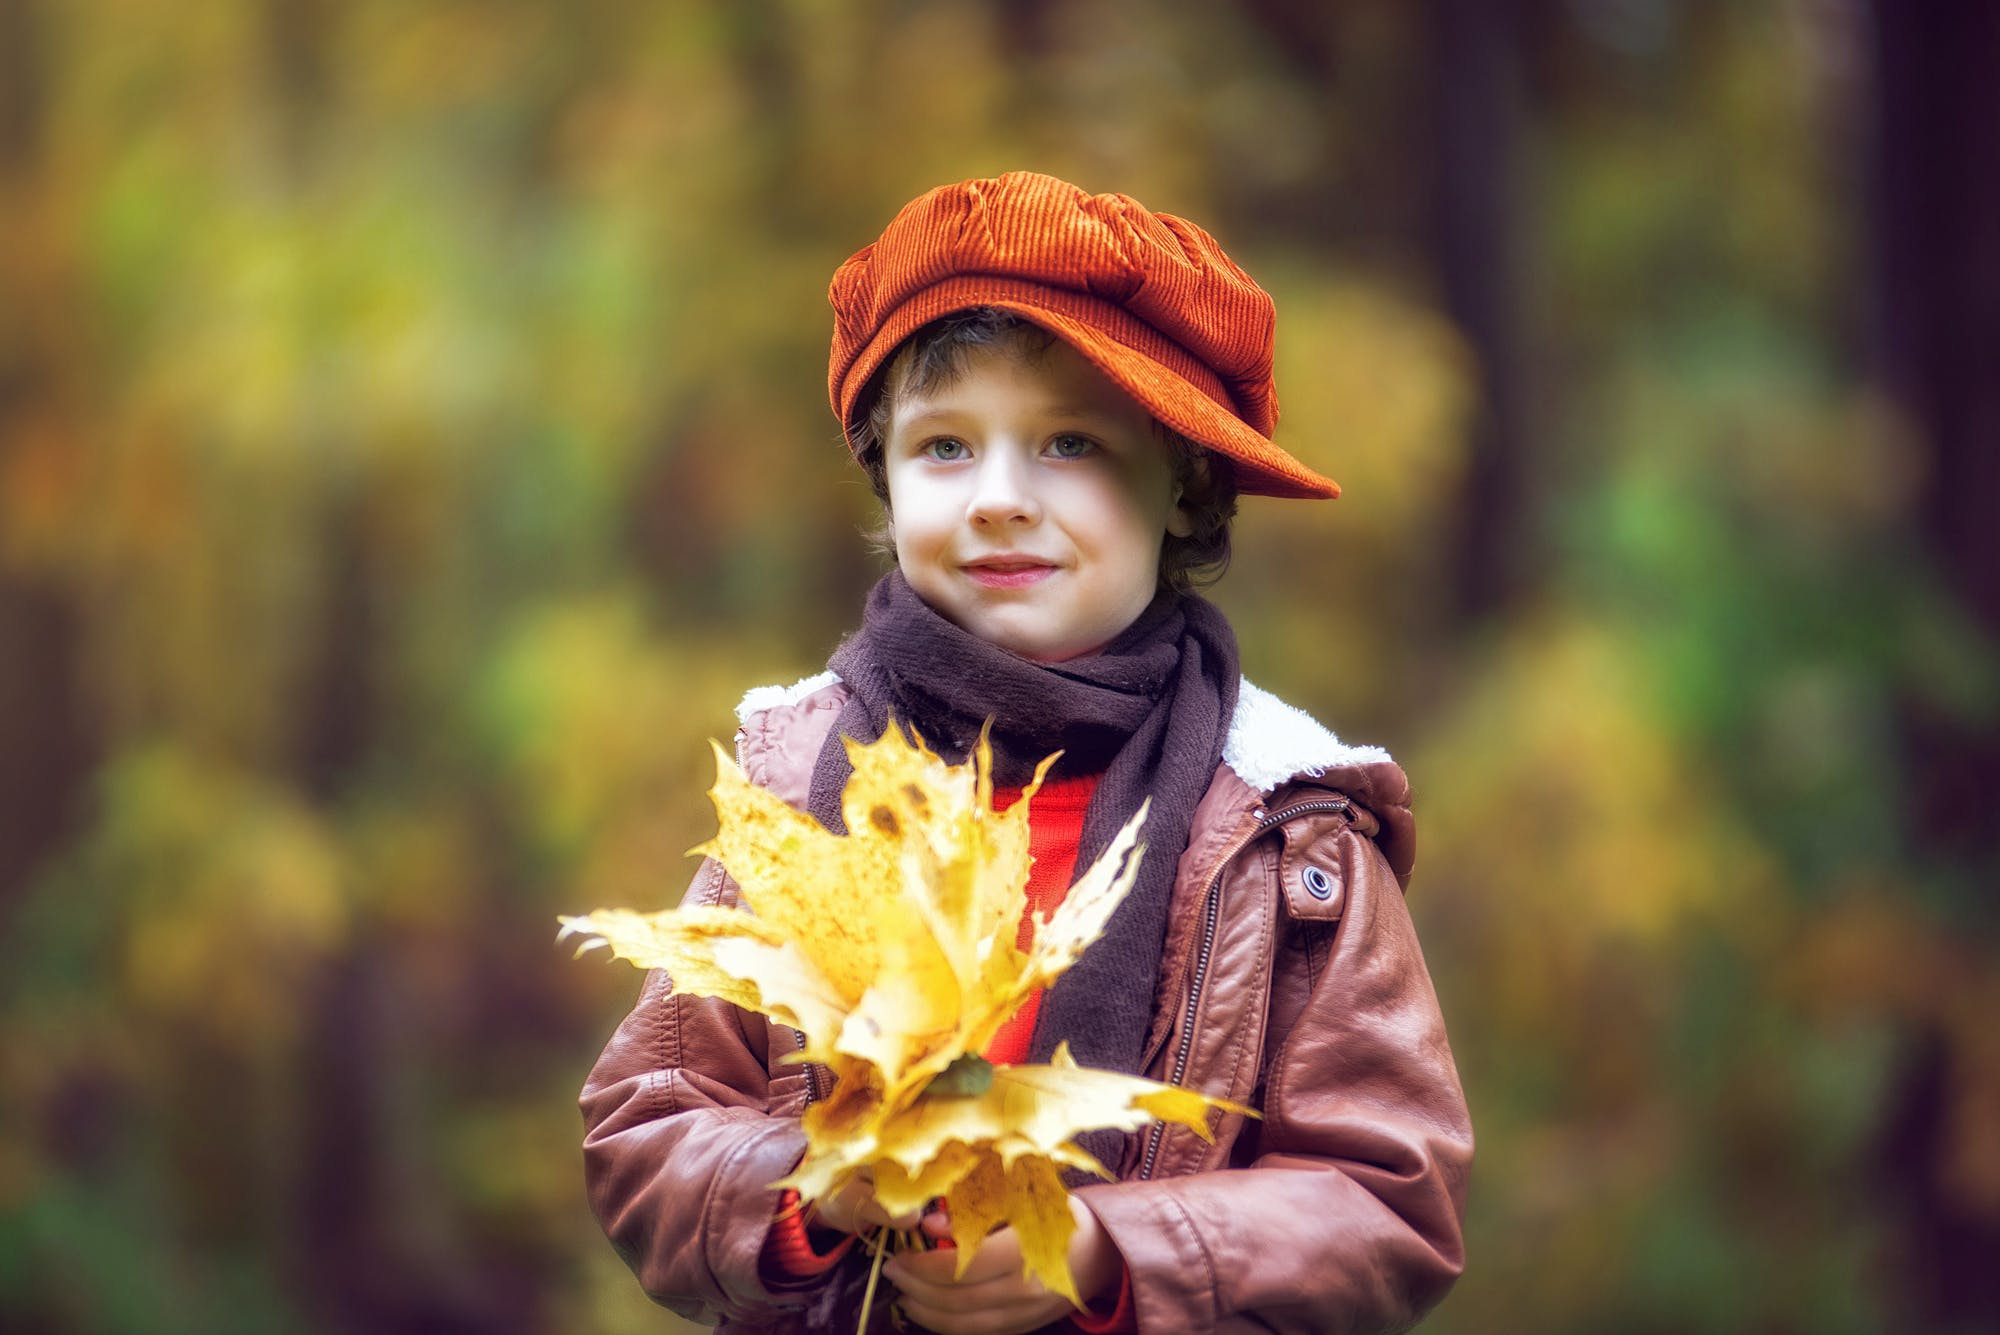 Boy Wearing Brown Leather Jacket Holding Yellow Leaves